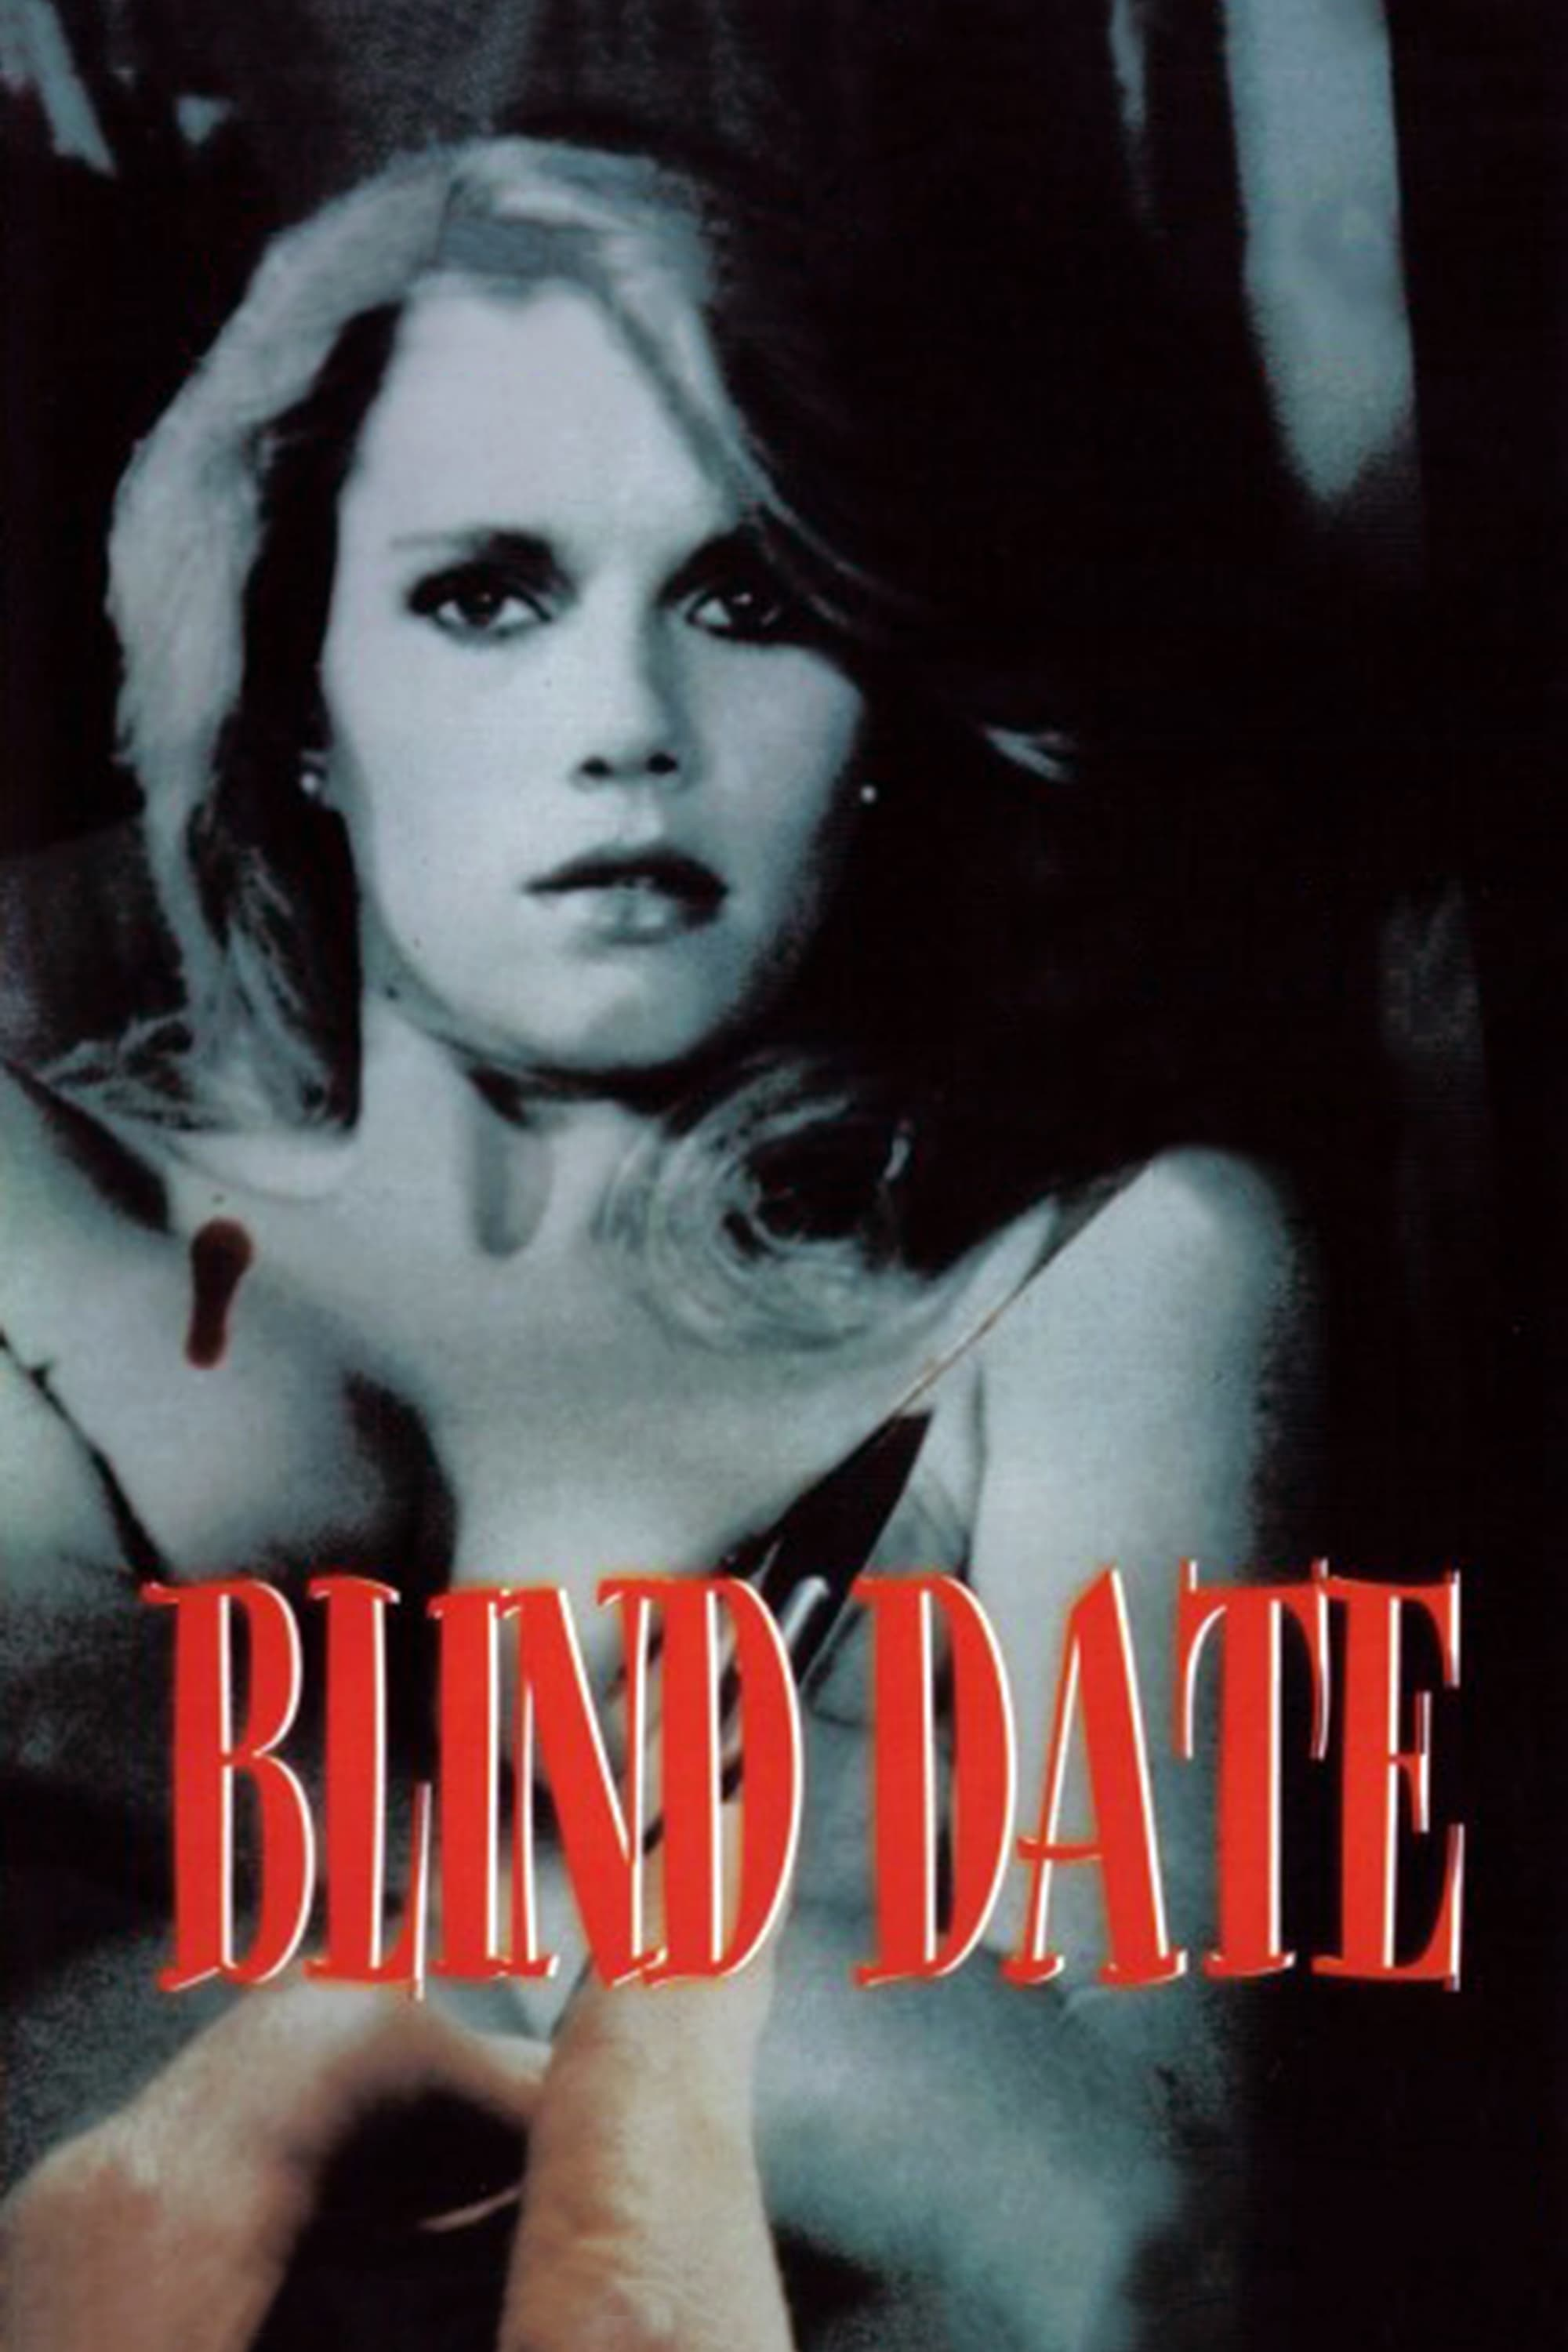 Blind date 1984 watch online in Australia